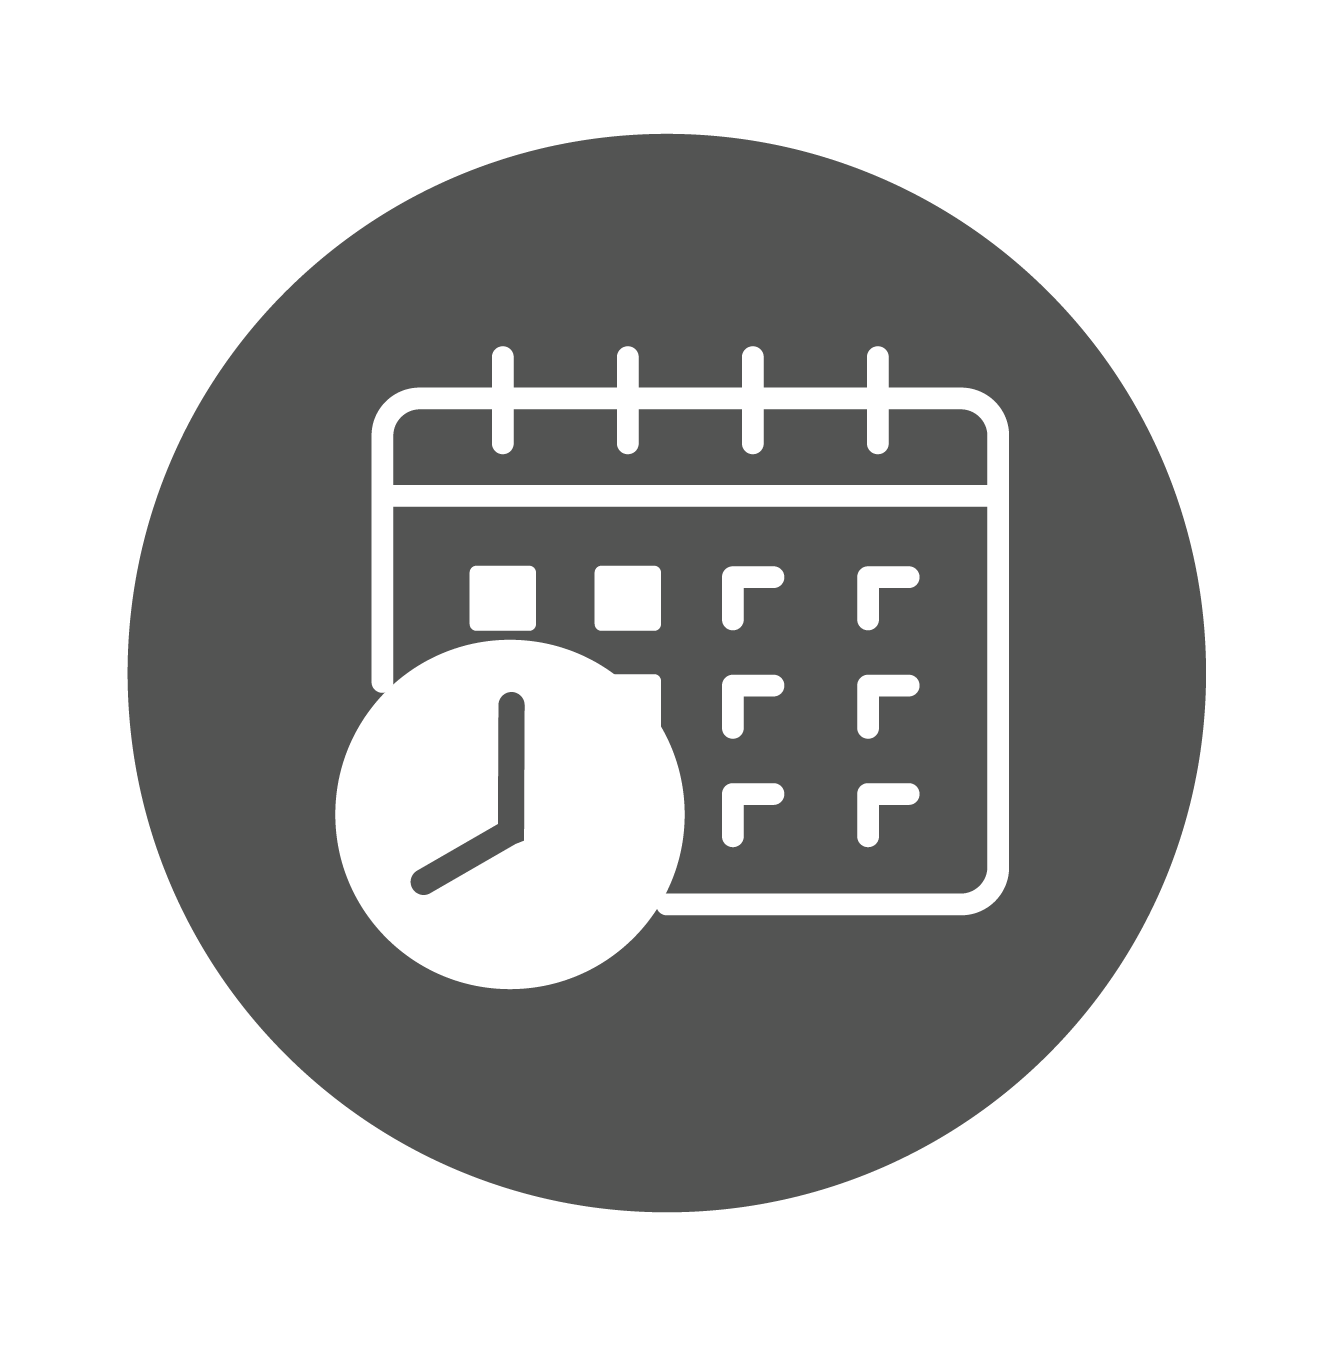 Platform Planning & Scheduling icon a calendar with a clock icon.